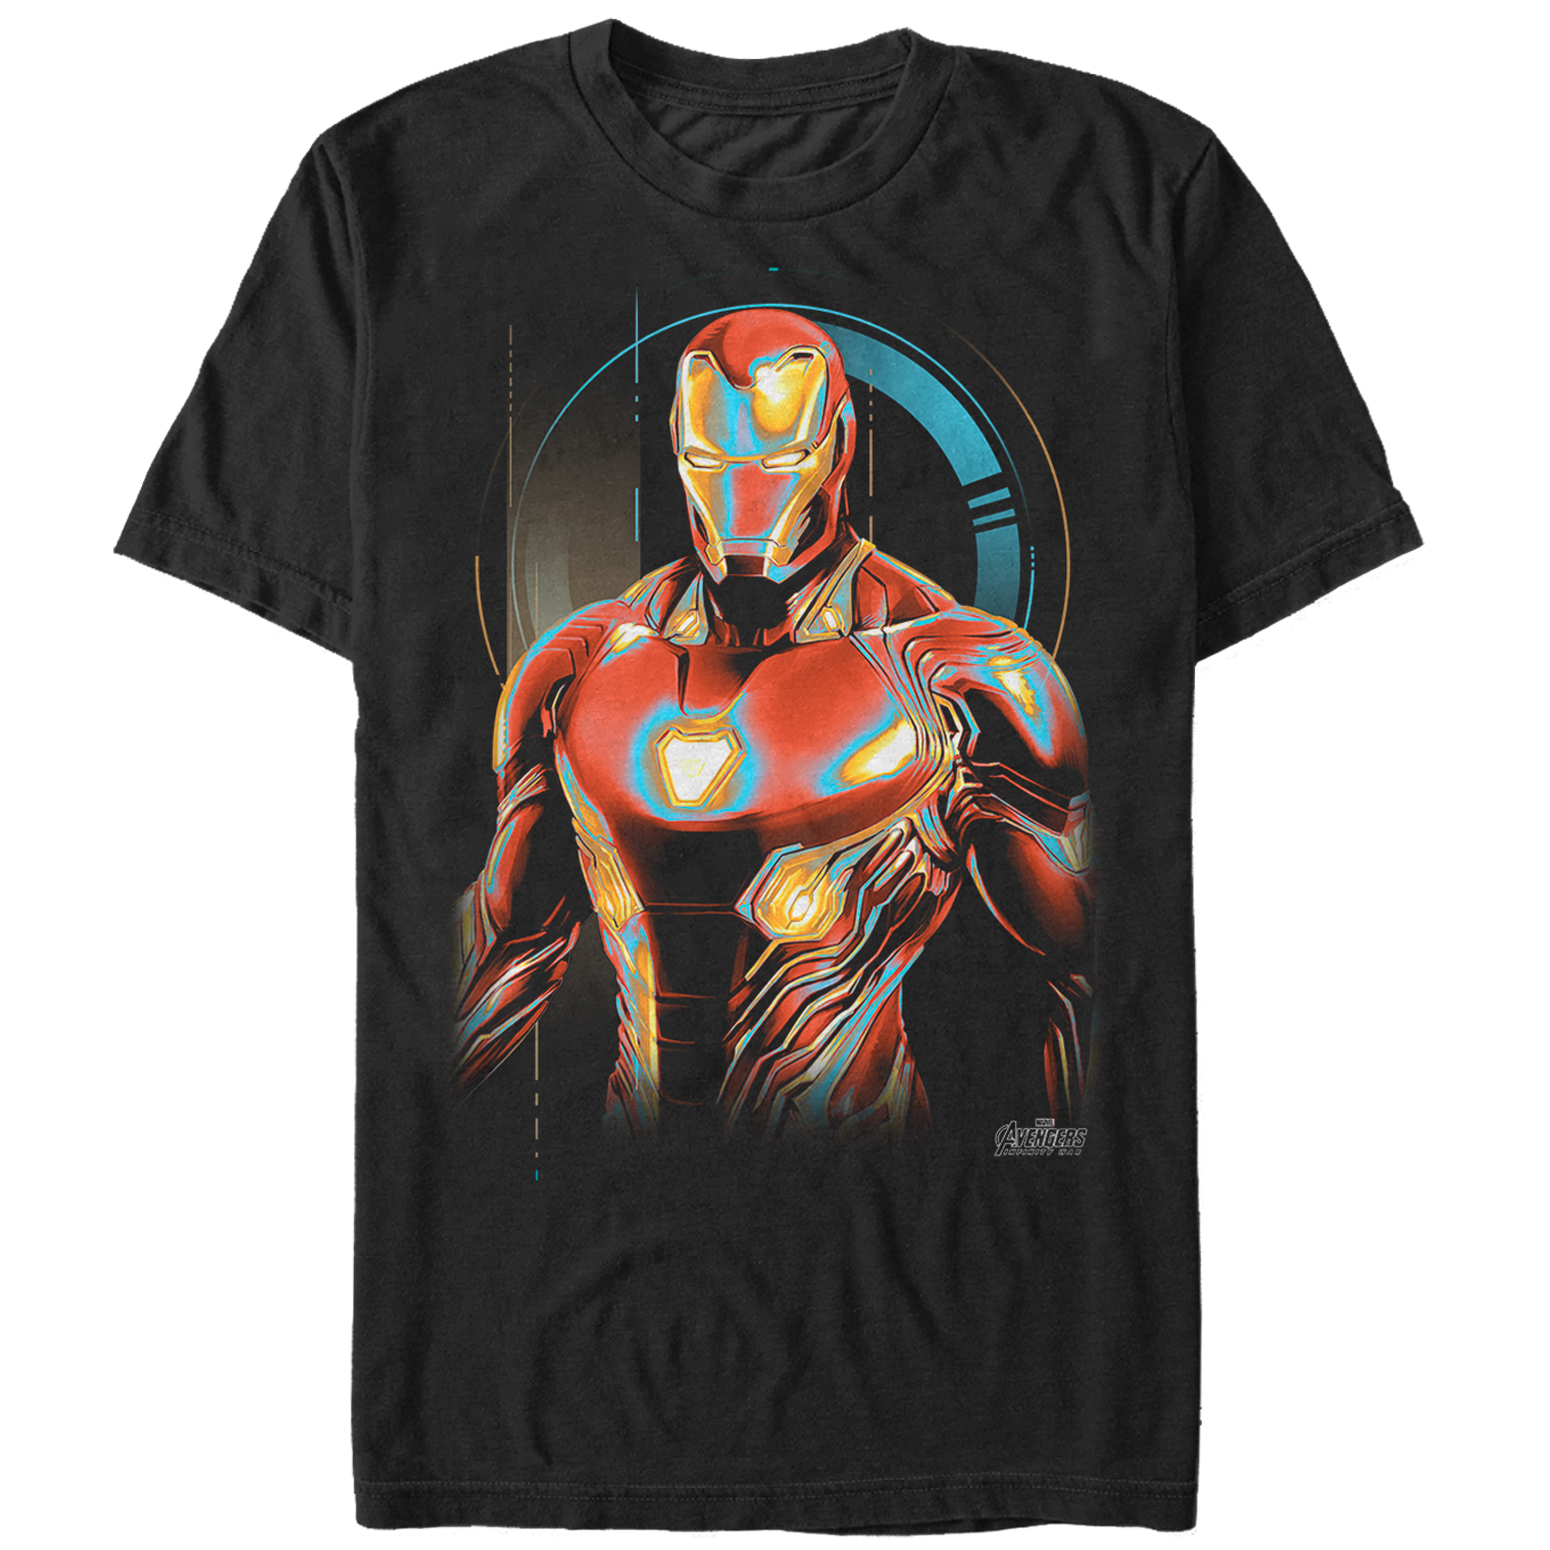 Marvel Men's Avengers: Infinity War Iron Man Future T-Shirt